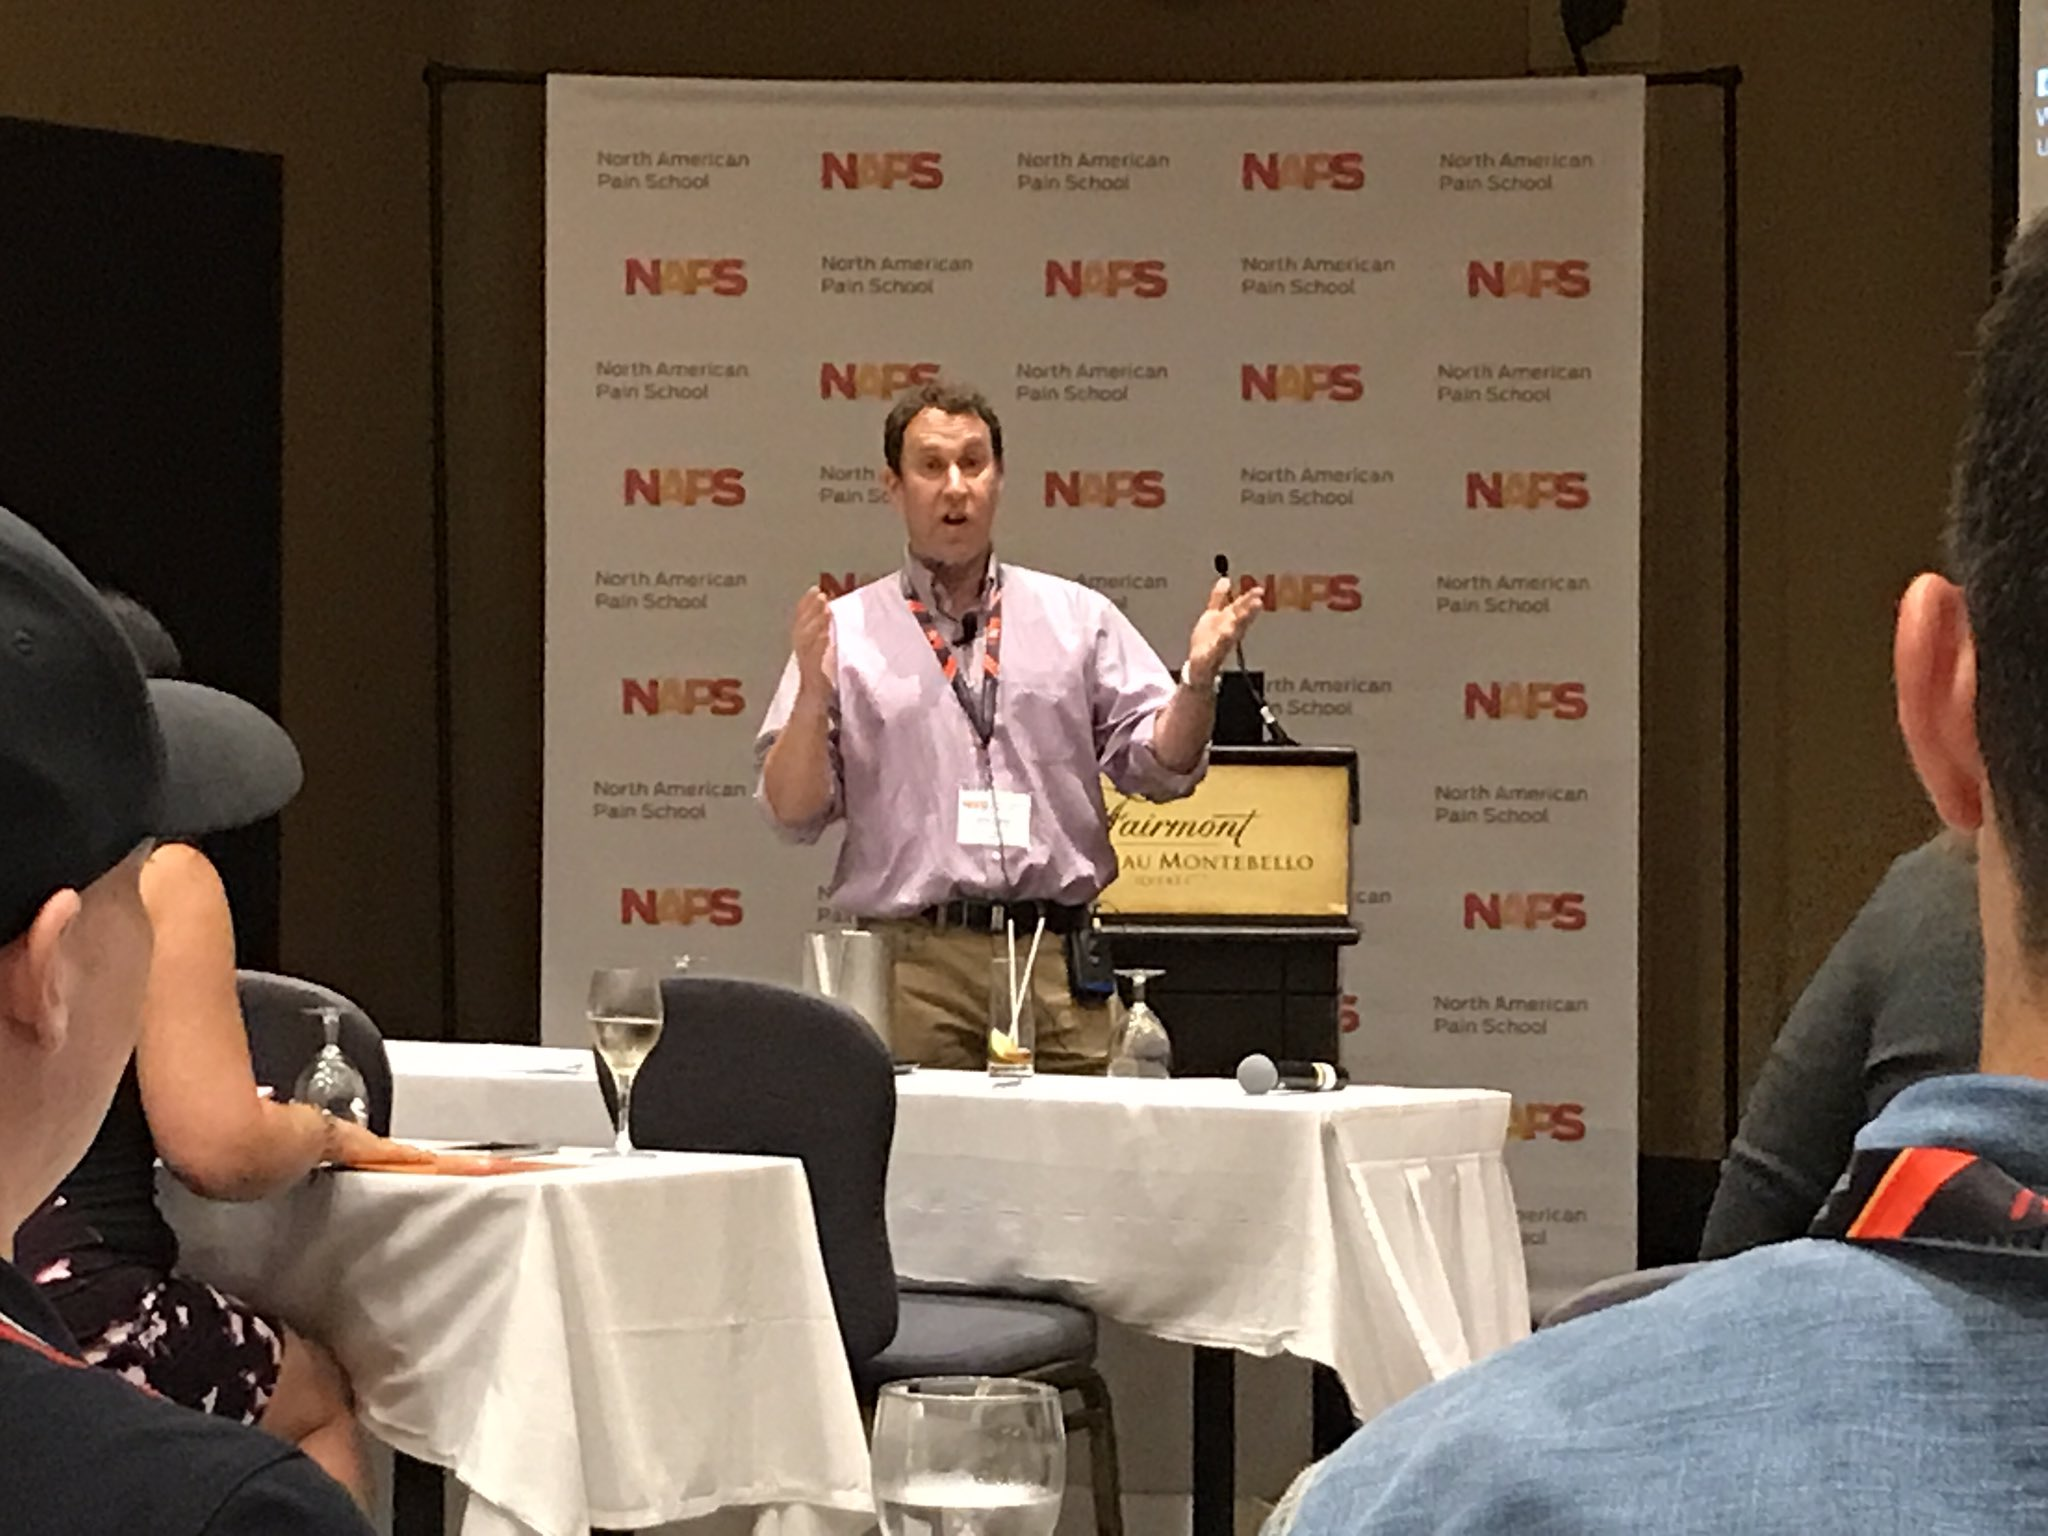 The North American Pain School starts!! Really excited! #NAPainSchool https://t.co/eUDsB9BtlE